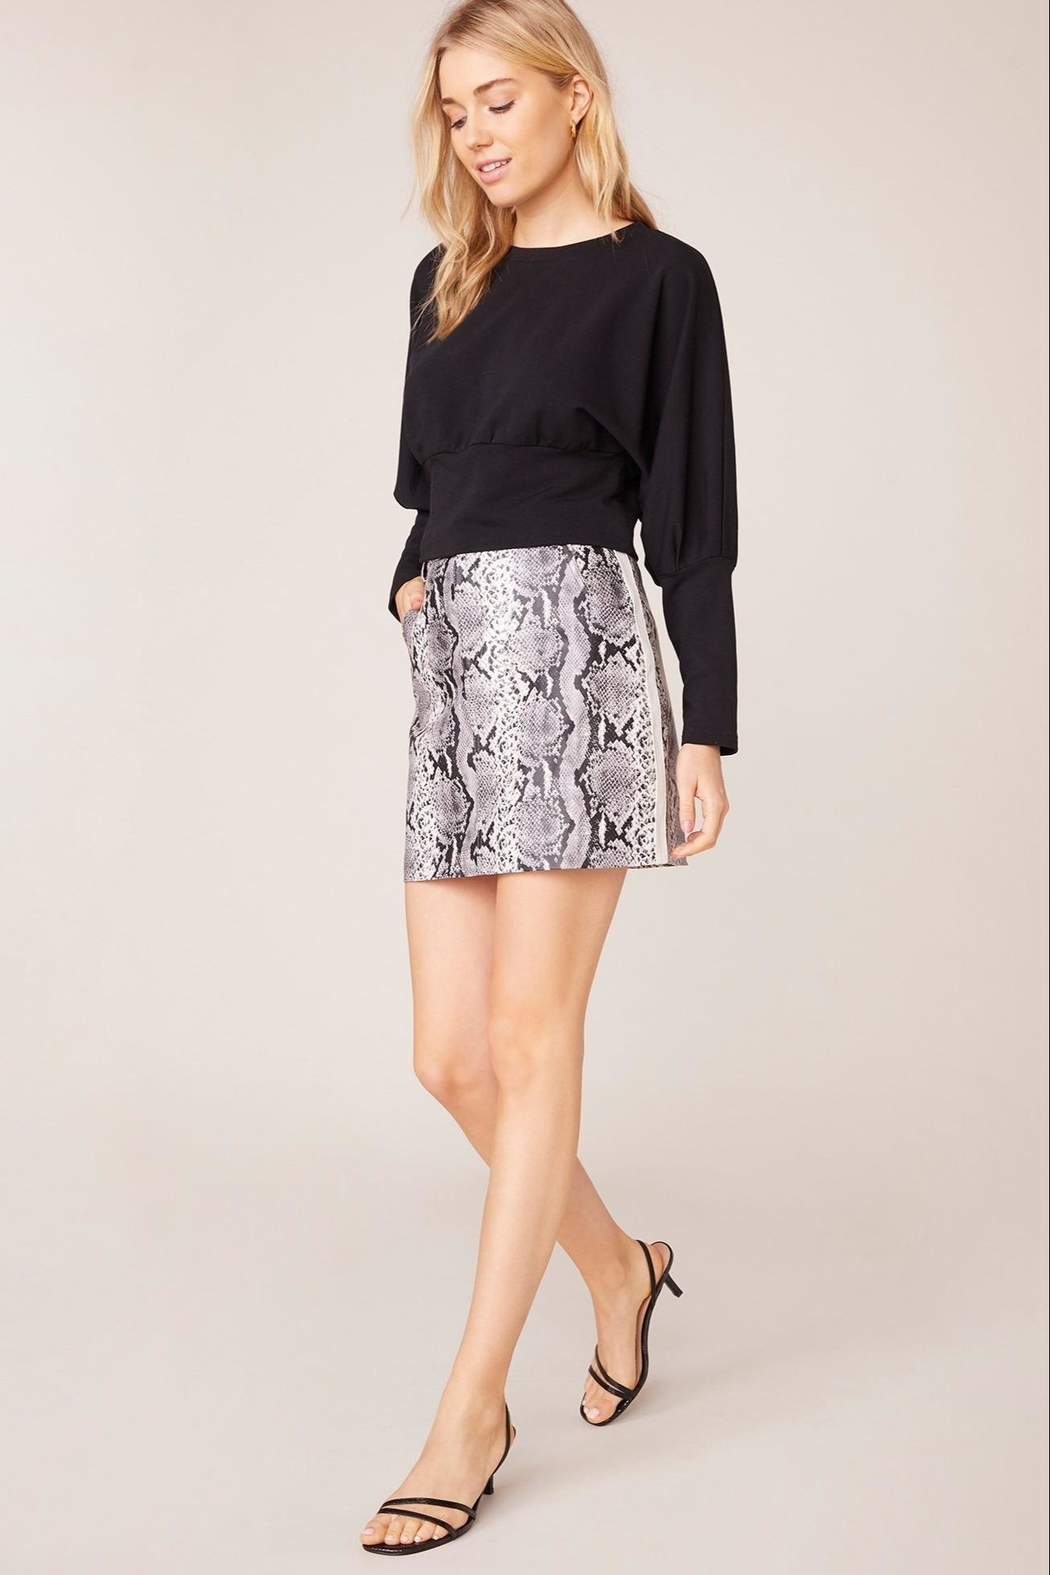 BB Dakota Python-The-Prowl Skirt - Front Cropped Image